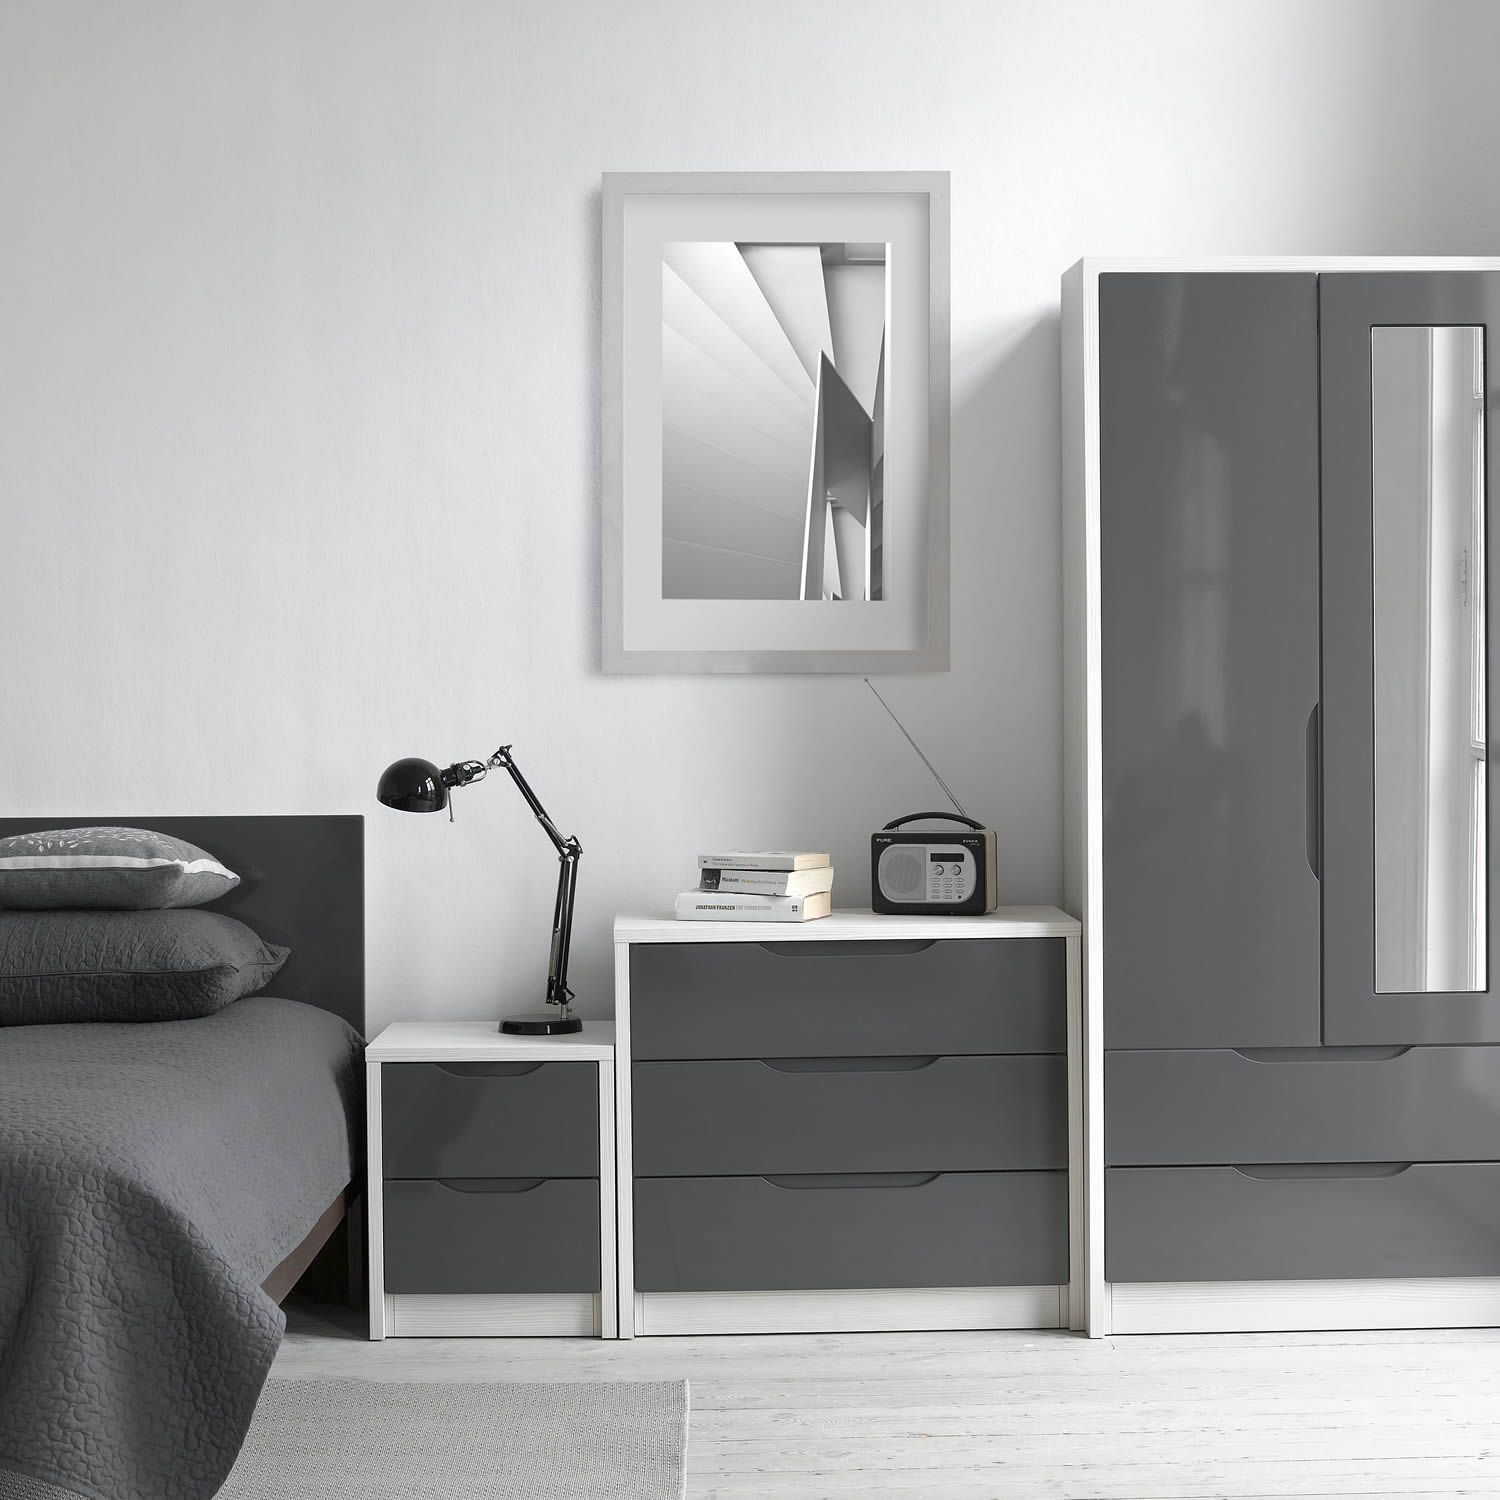 Avola Grey Gloss 2 Door 2 Drawer Combi Wardrobe With Mirror Next Day Delivery Avola Grey Gloss 2 Wardrobe Design Bedroom Mirrored Wardrobe Bedroom Furniture